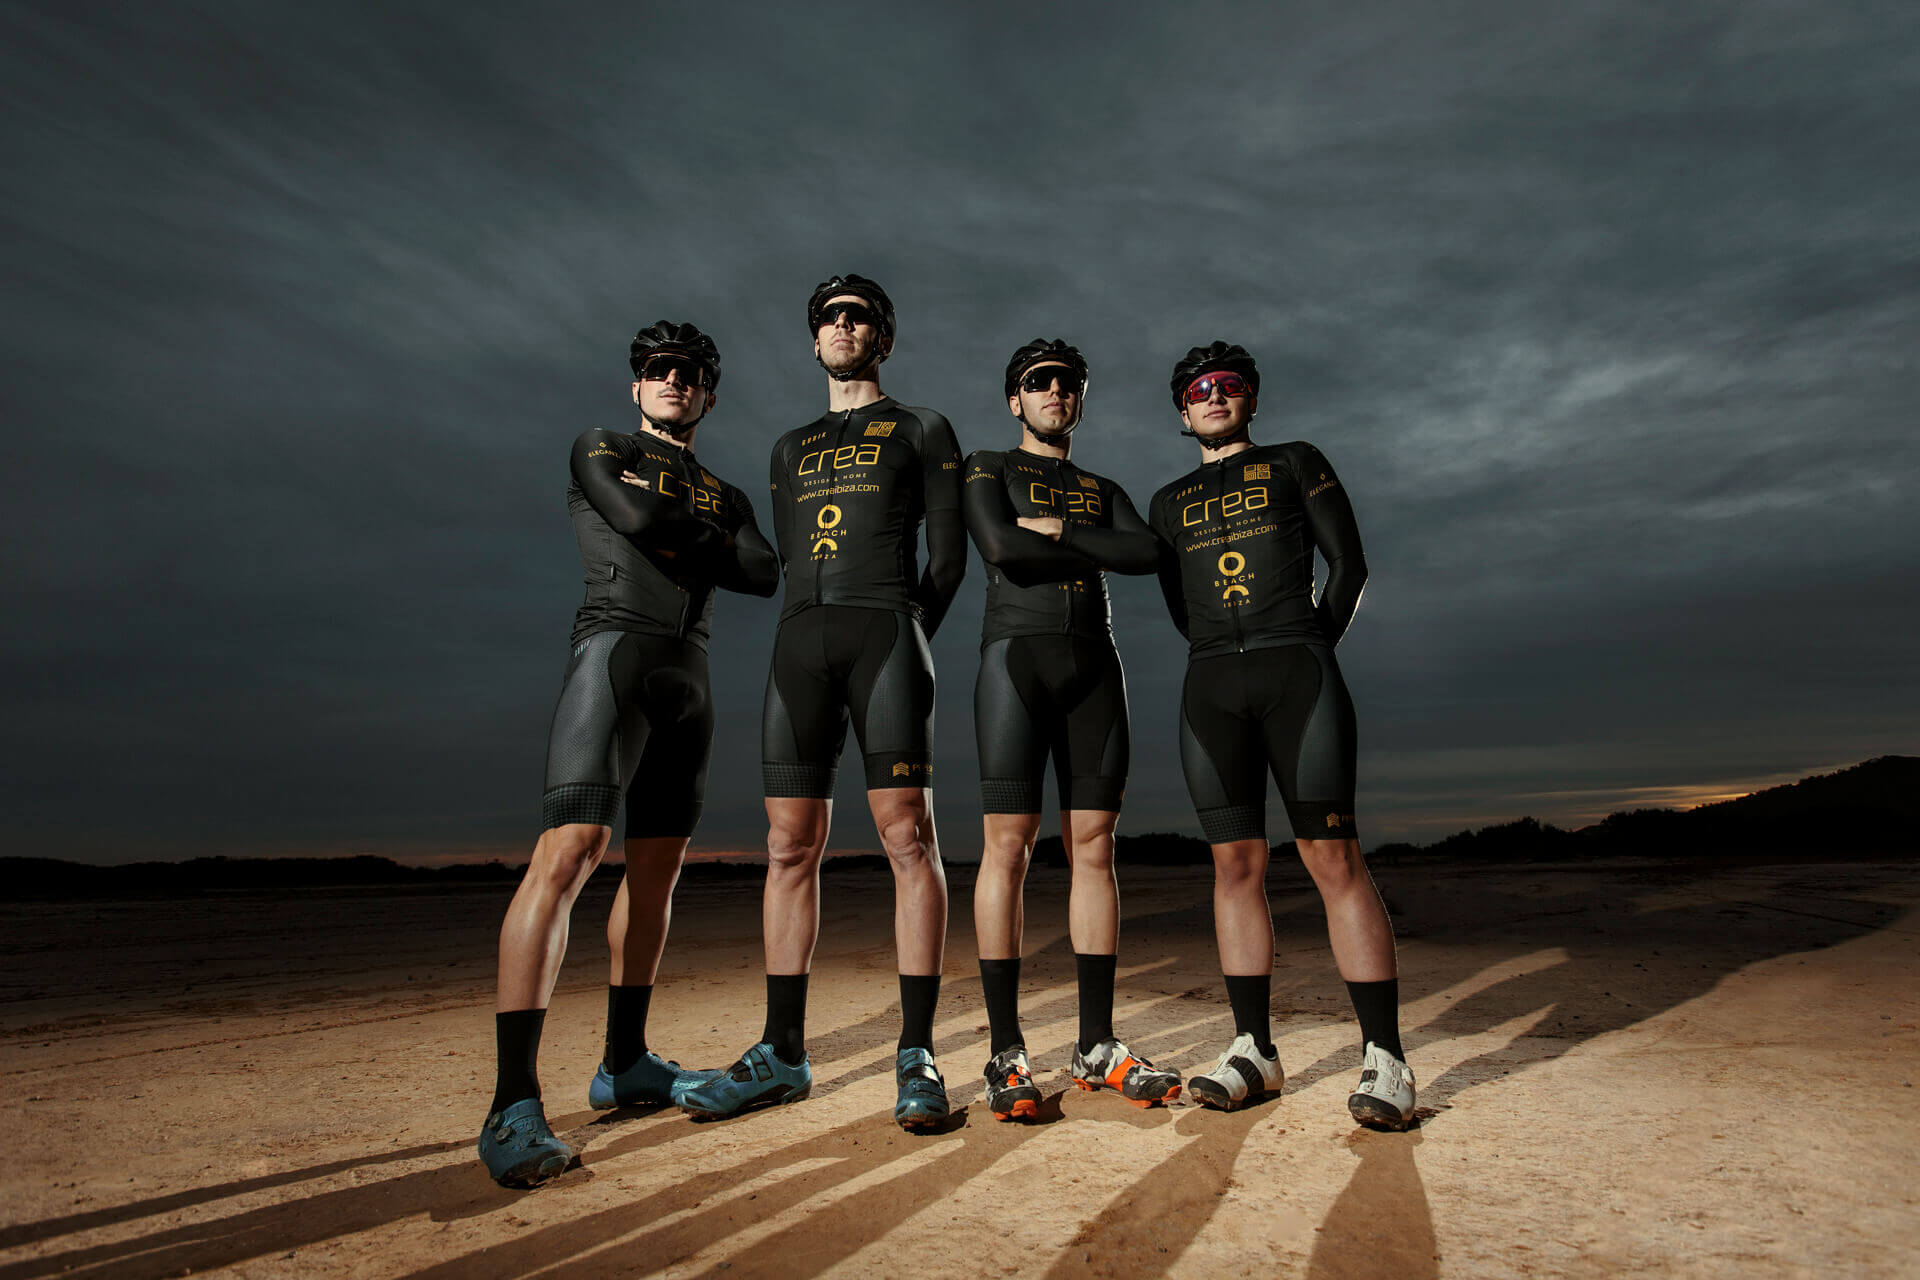 Ibiza Cycling Team